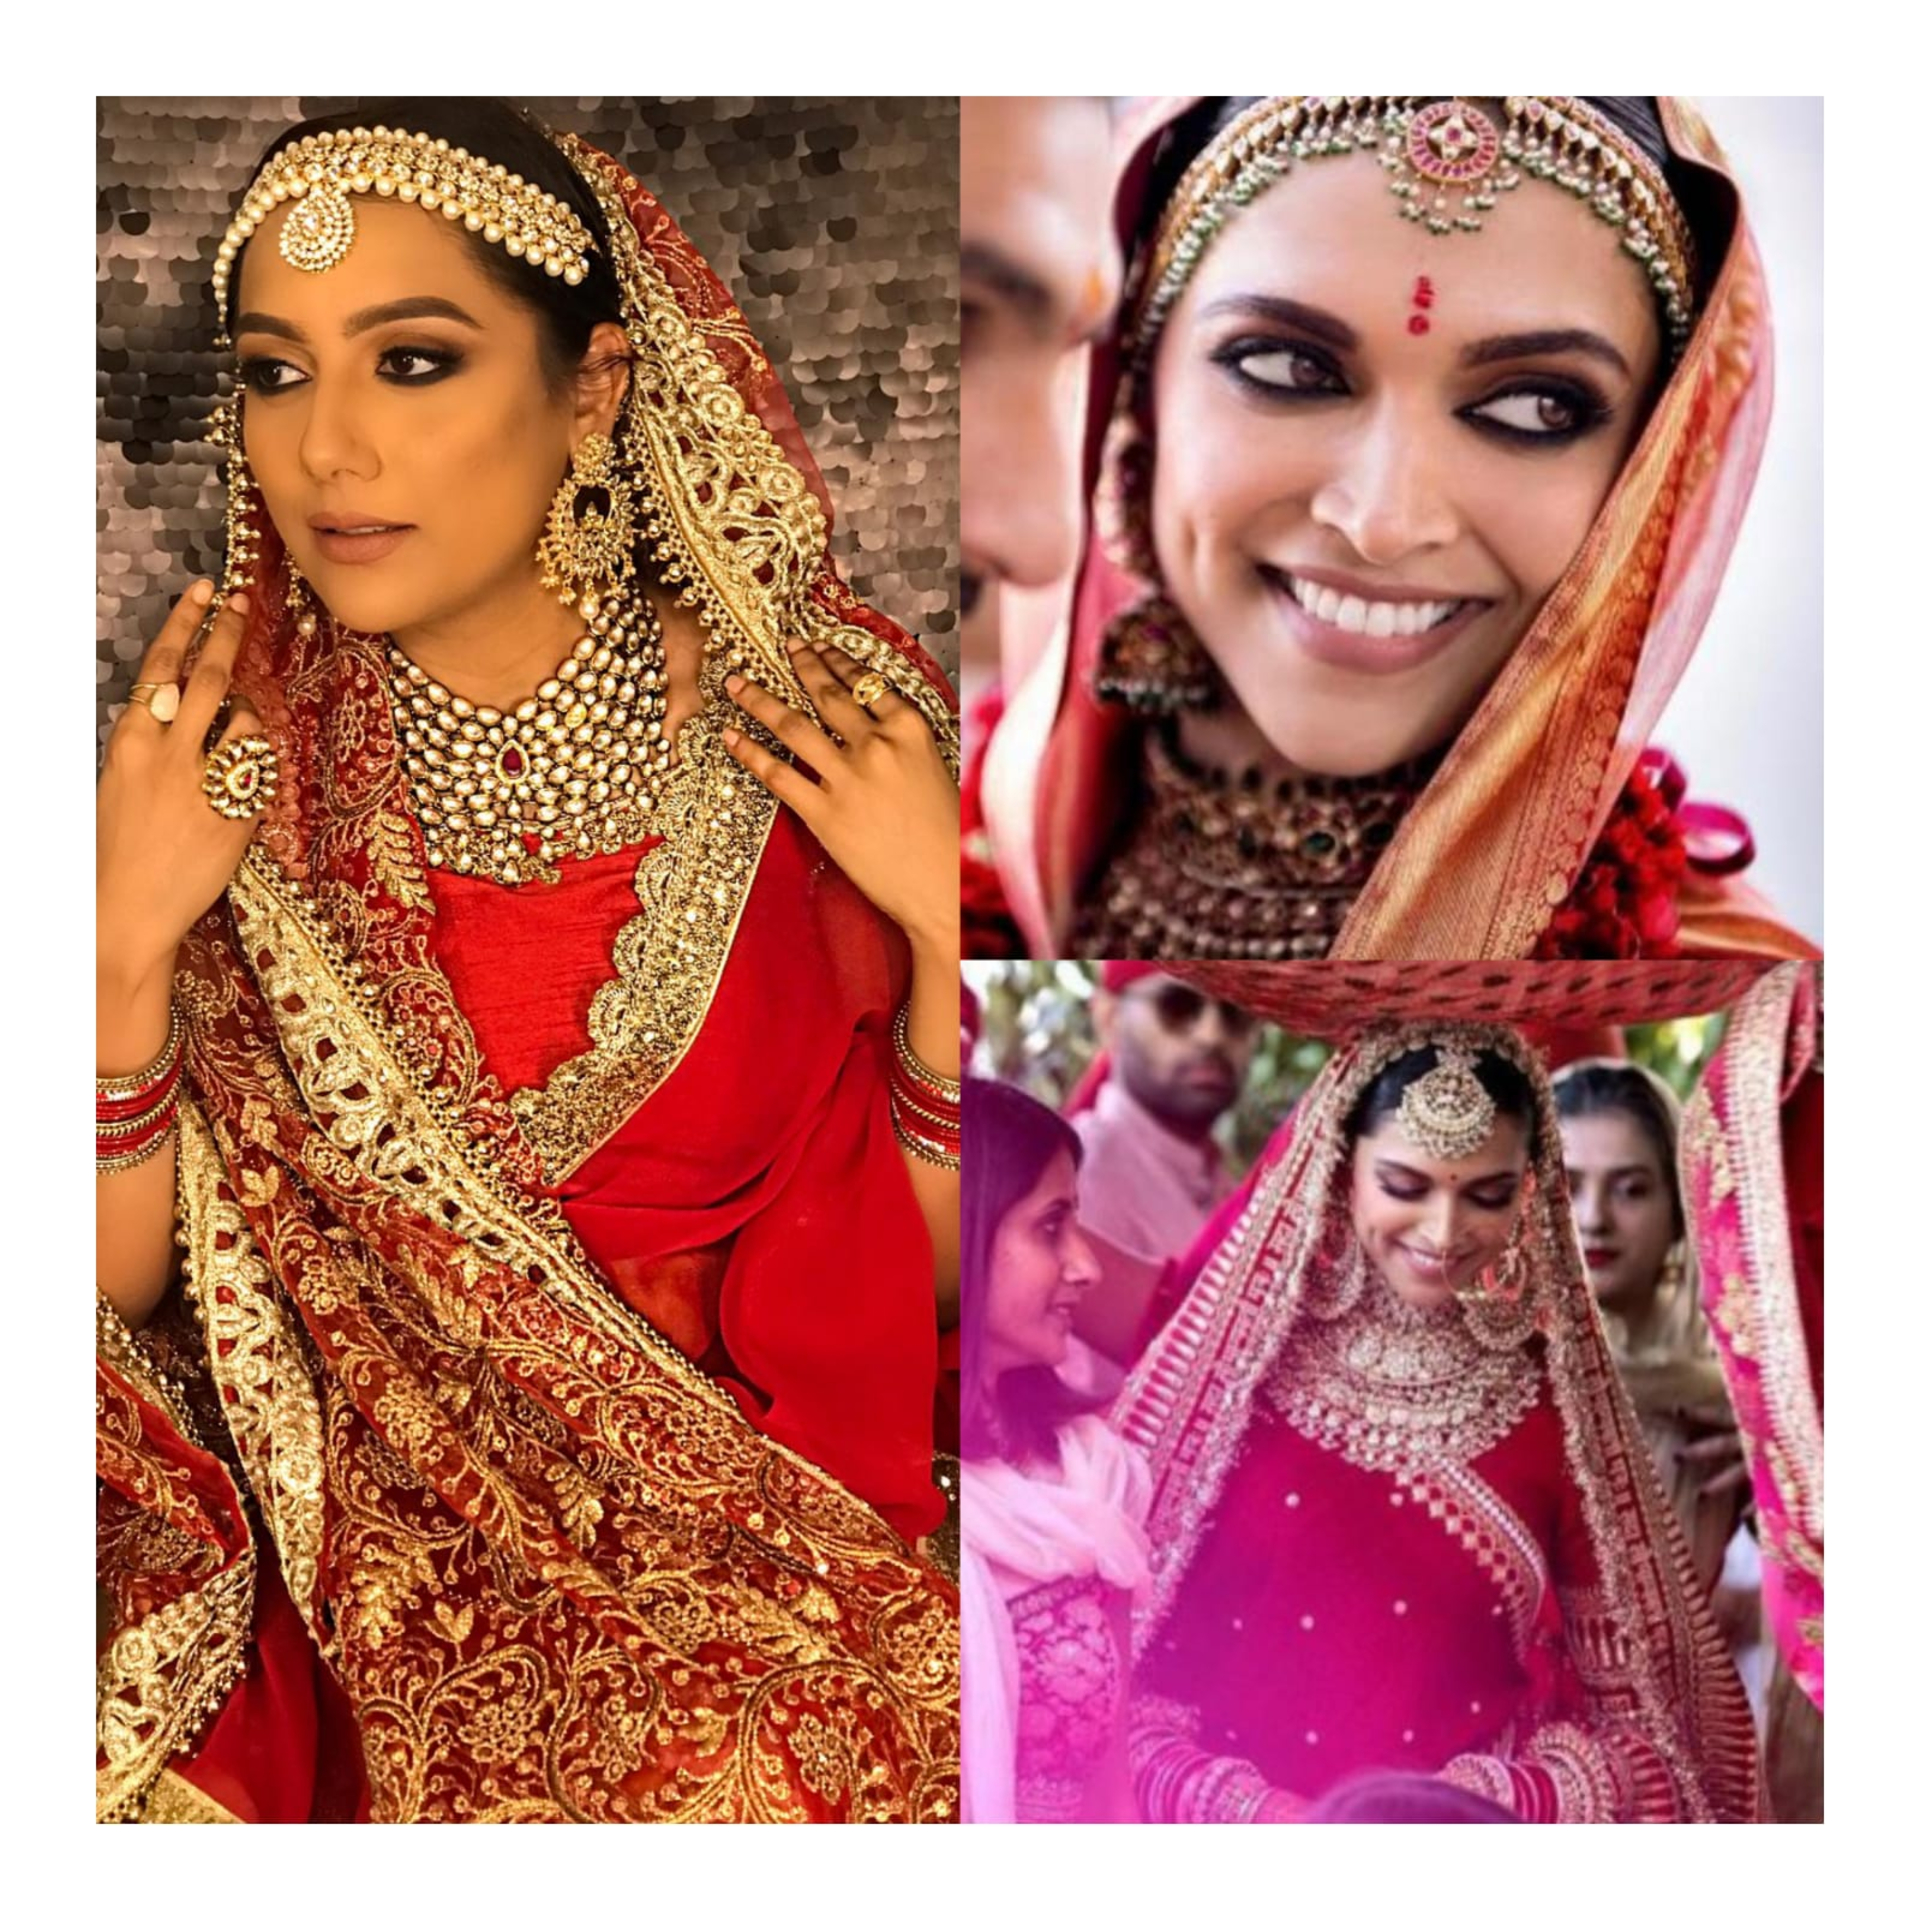 RECREATED DEEPIKA PADUKONE'S WEDDING LOOK image